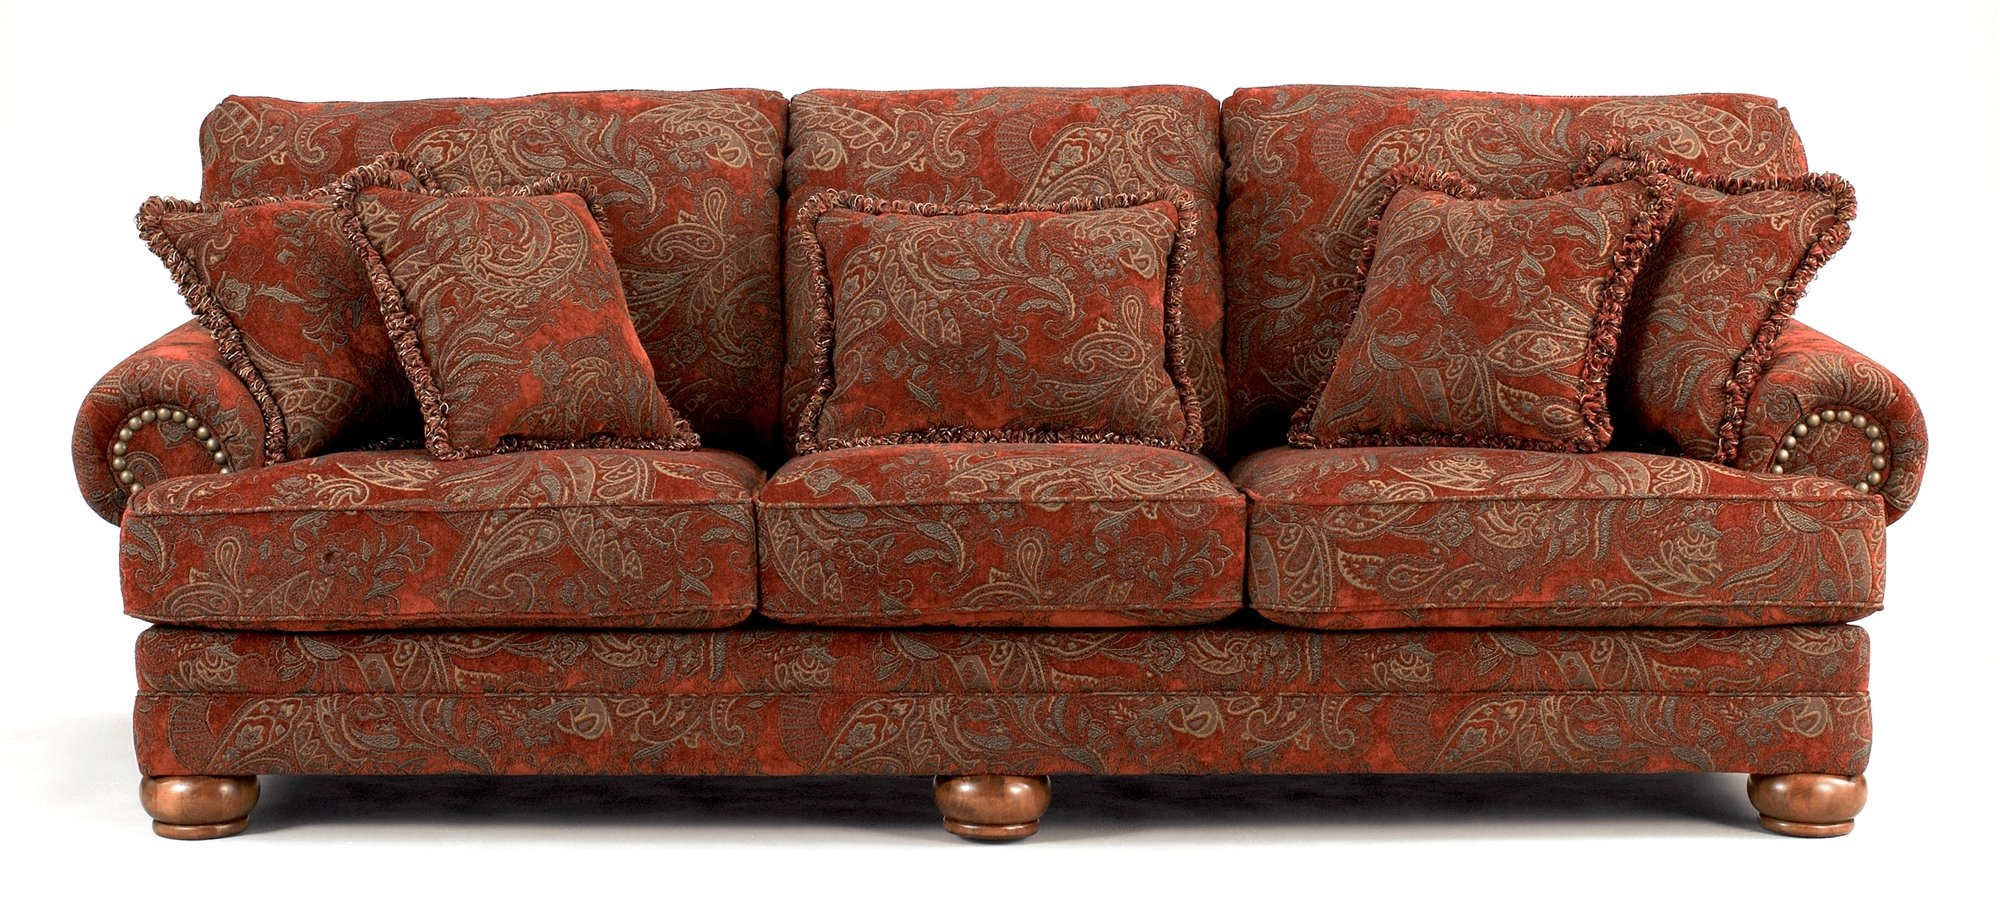 Unique Paisley Couch Living Room Furniture Home Design